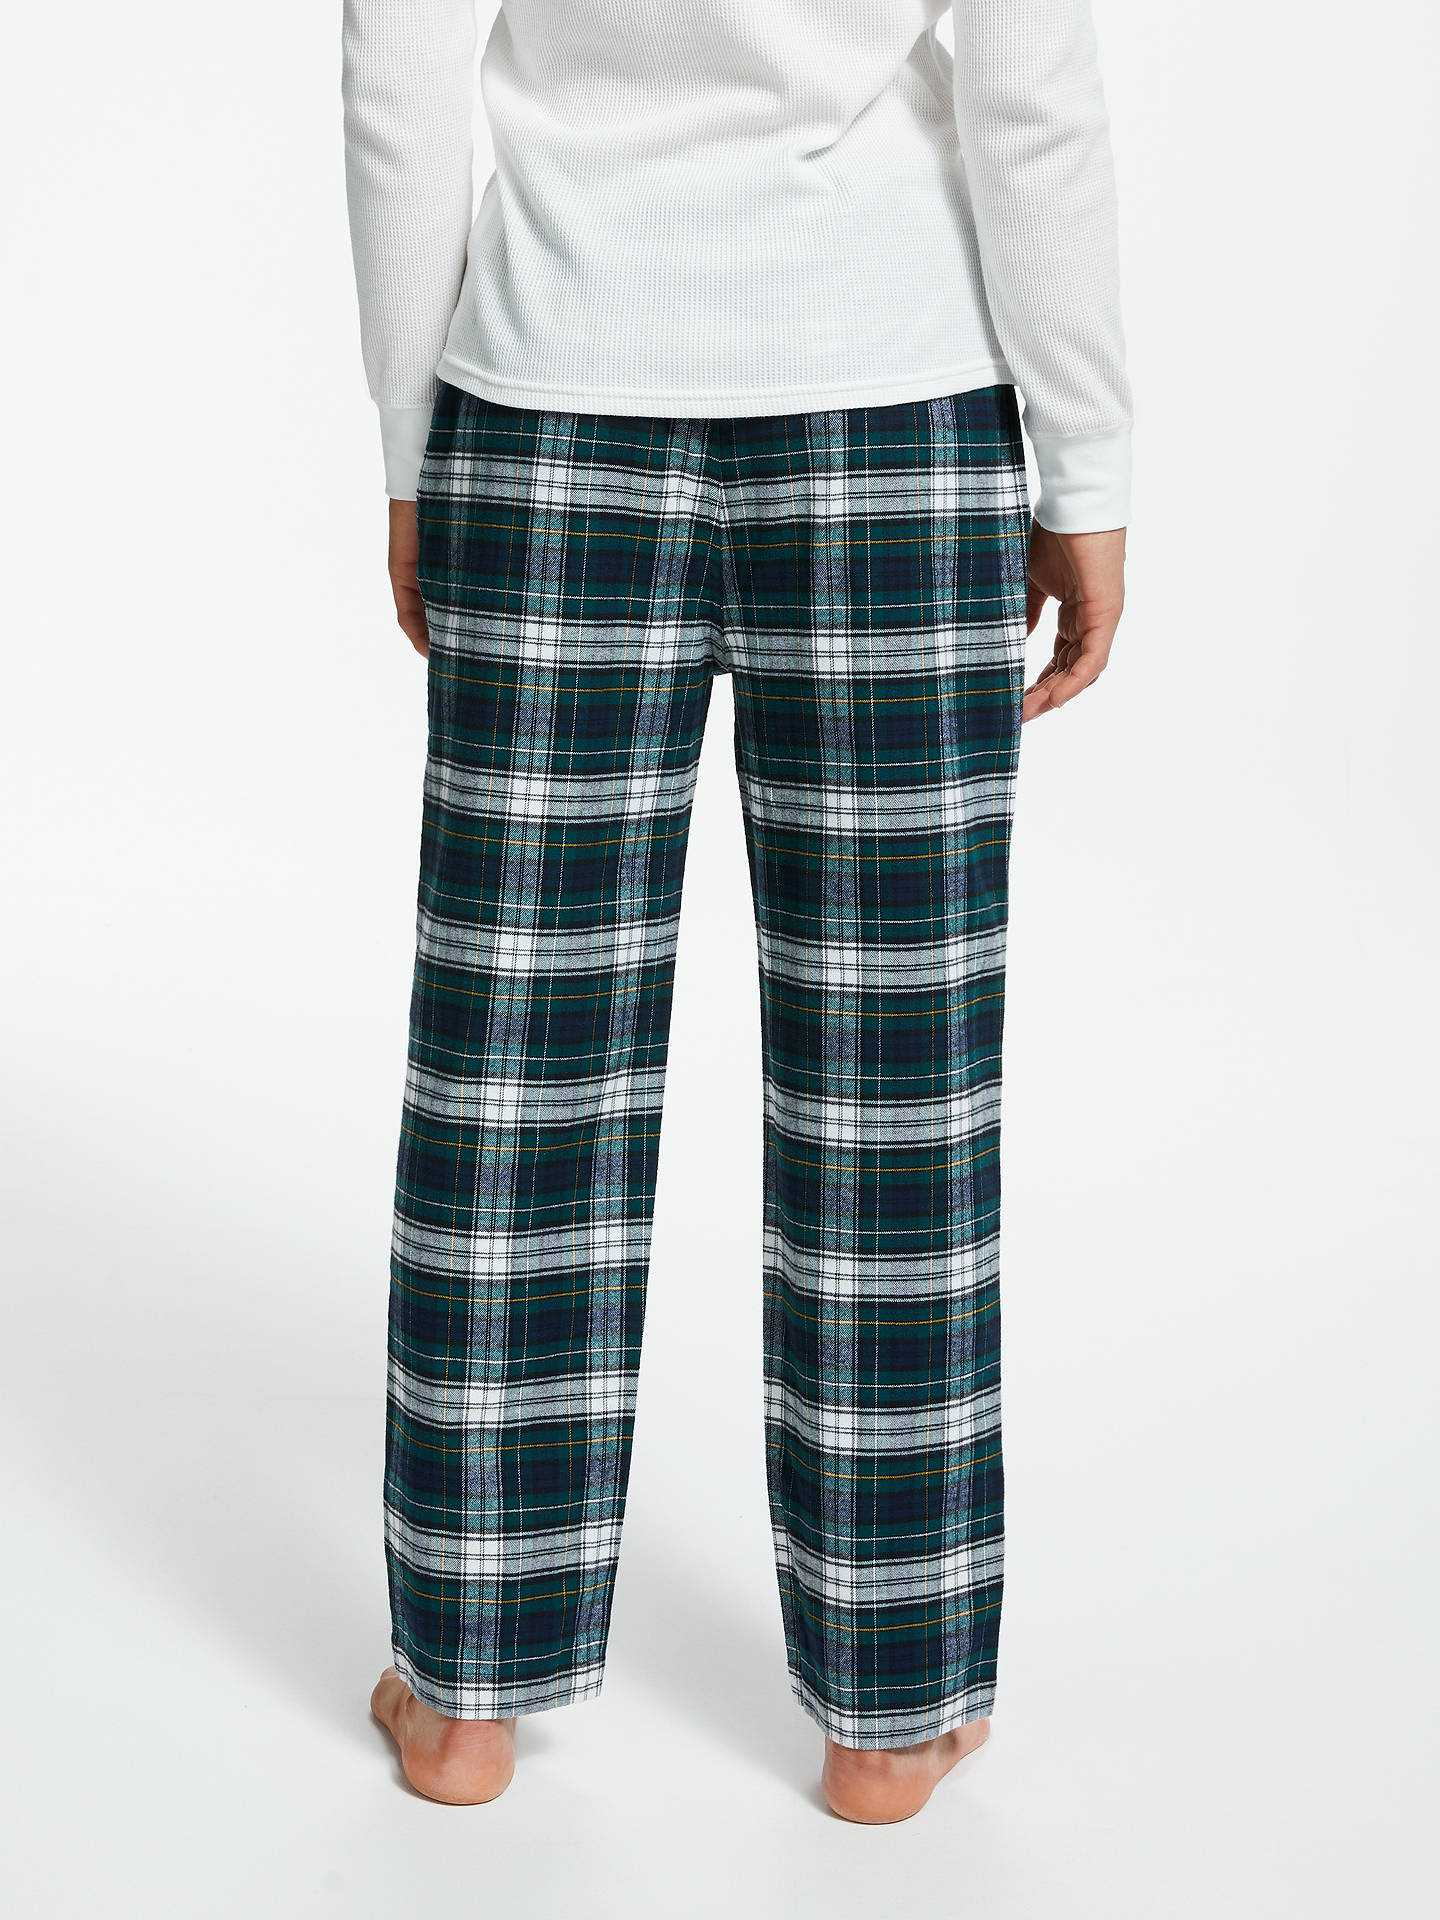 Buy Polo Ralph Lauren Flannel Check Lounge Pants, Green, S Online at johnlewis.com